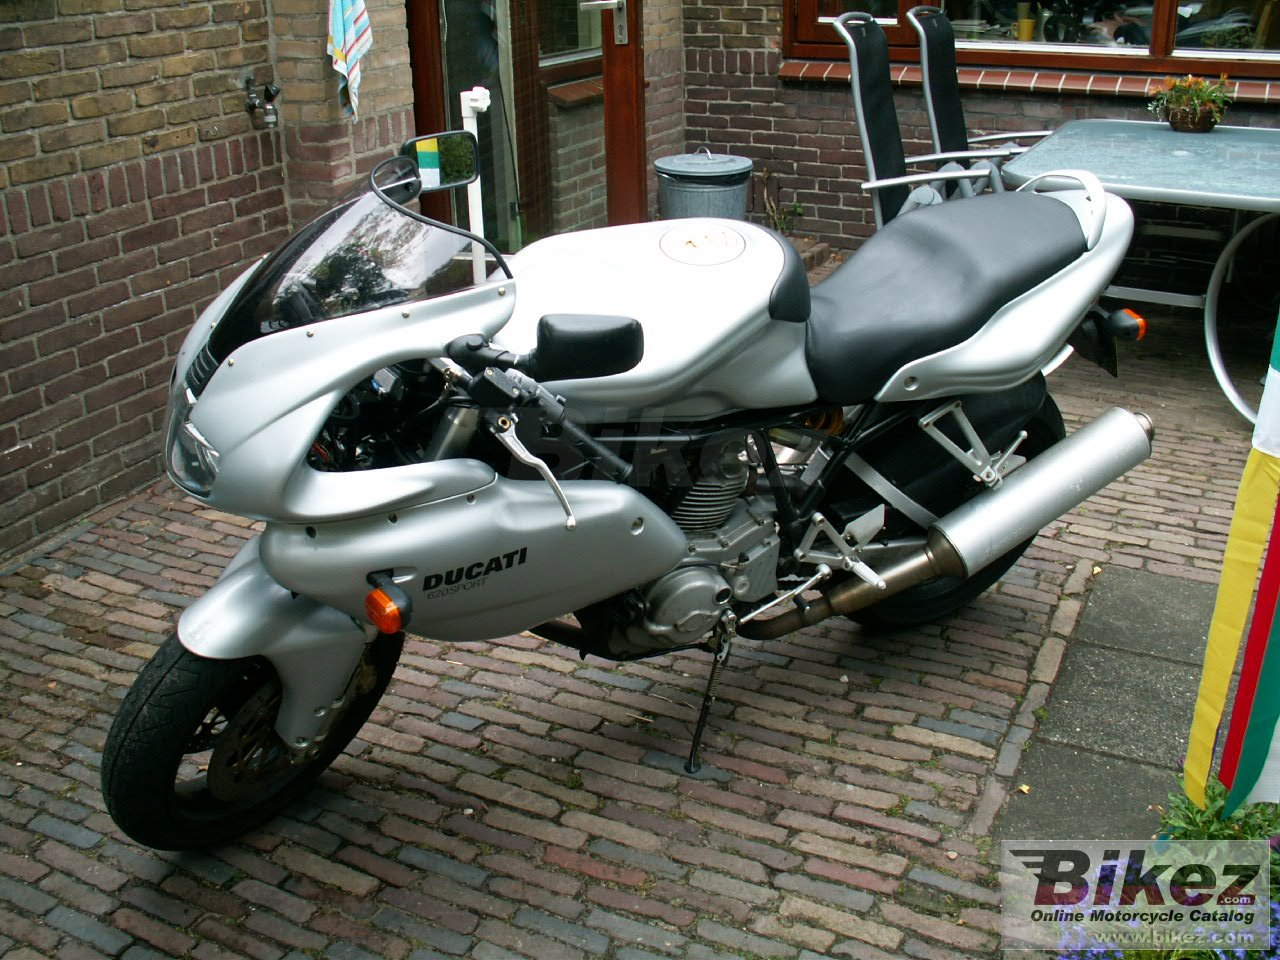 etherlands) 620 sport half-fairing